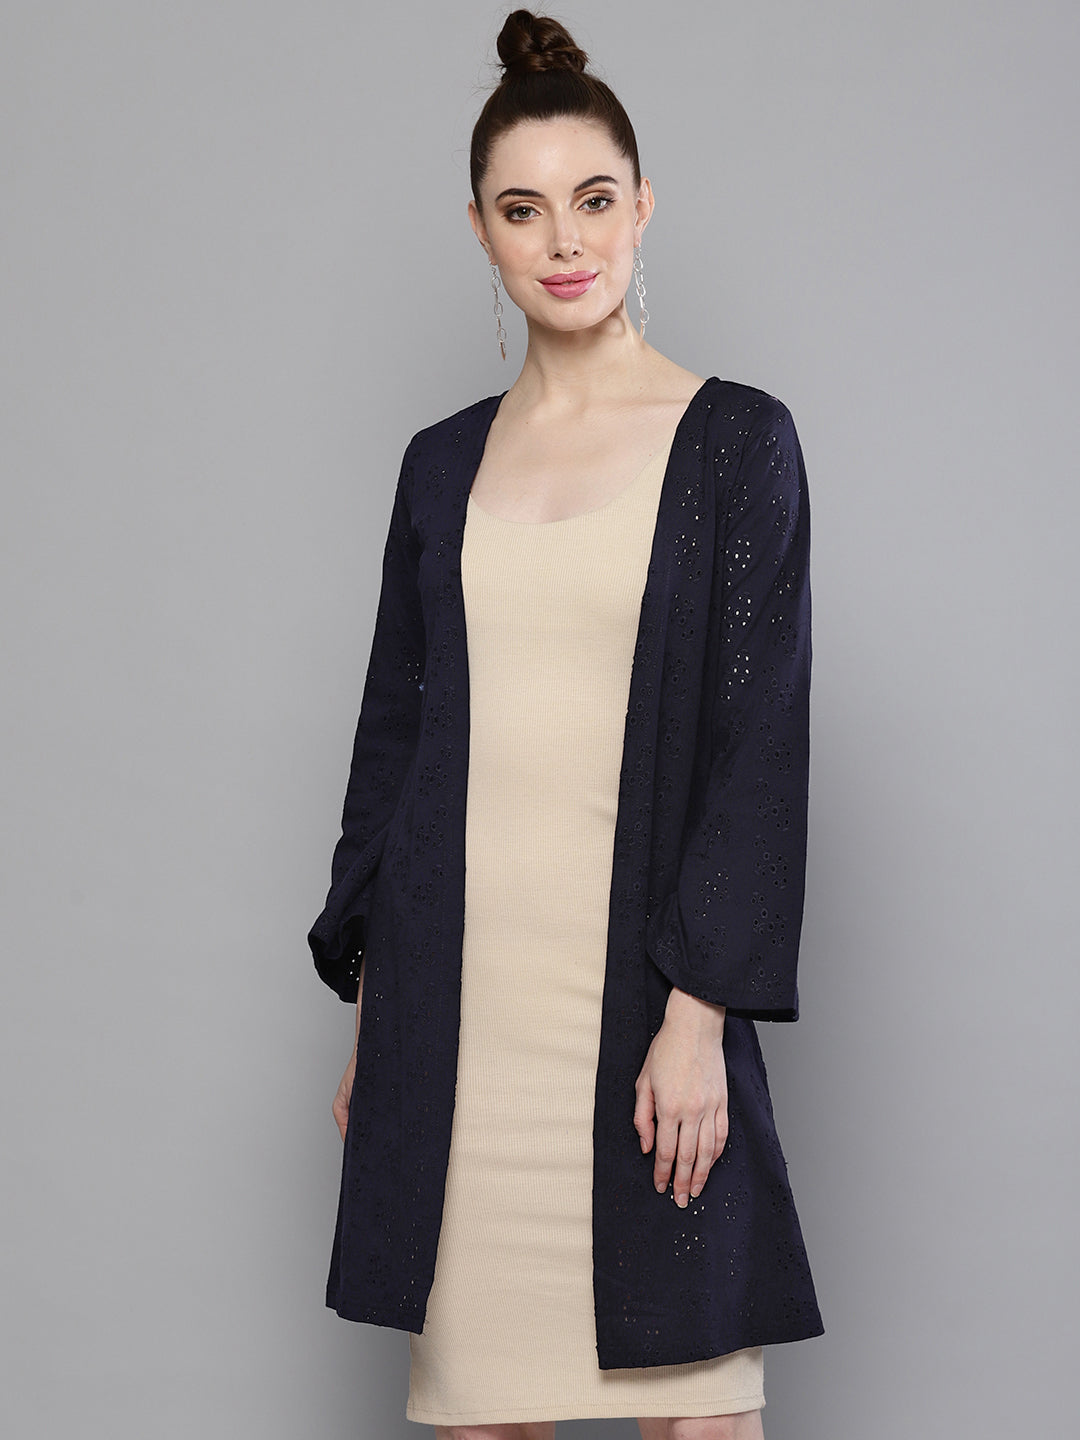 Blue Shifley Bell Sleeves Shrug